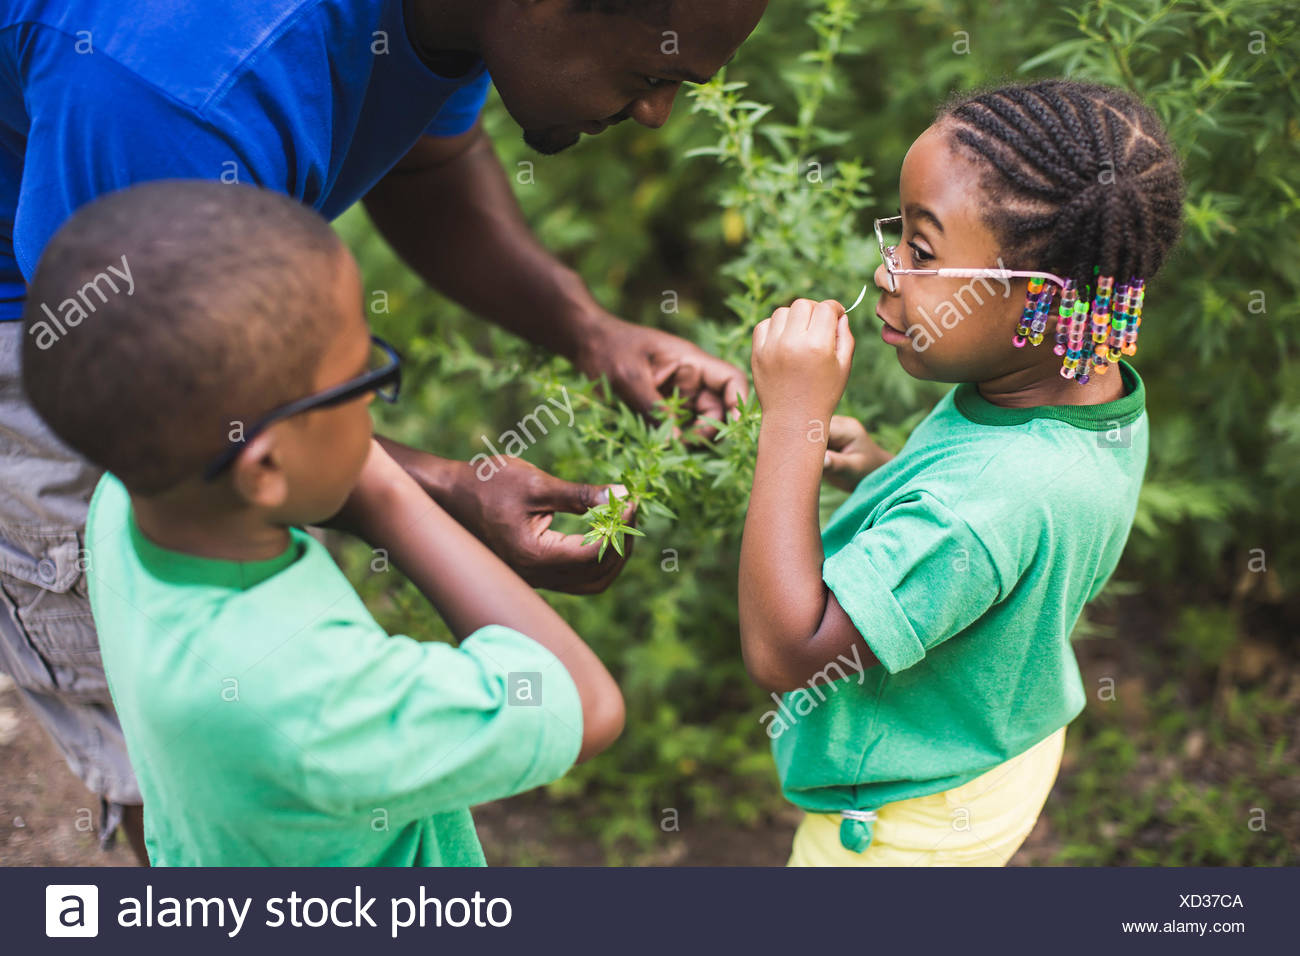 Father smelling plants with son and daughter at forest eco camp - Stock Image